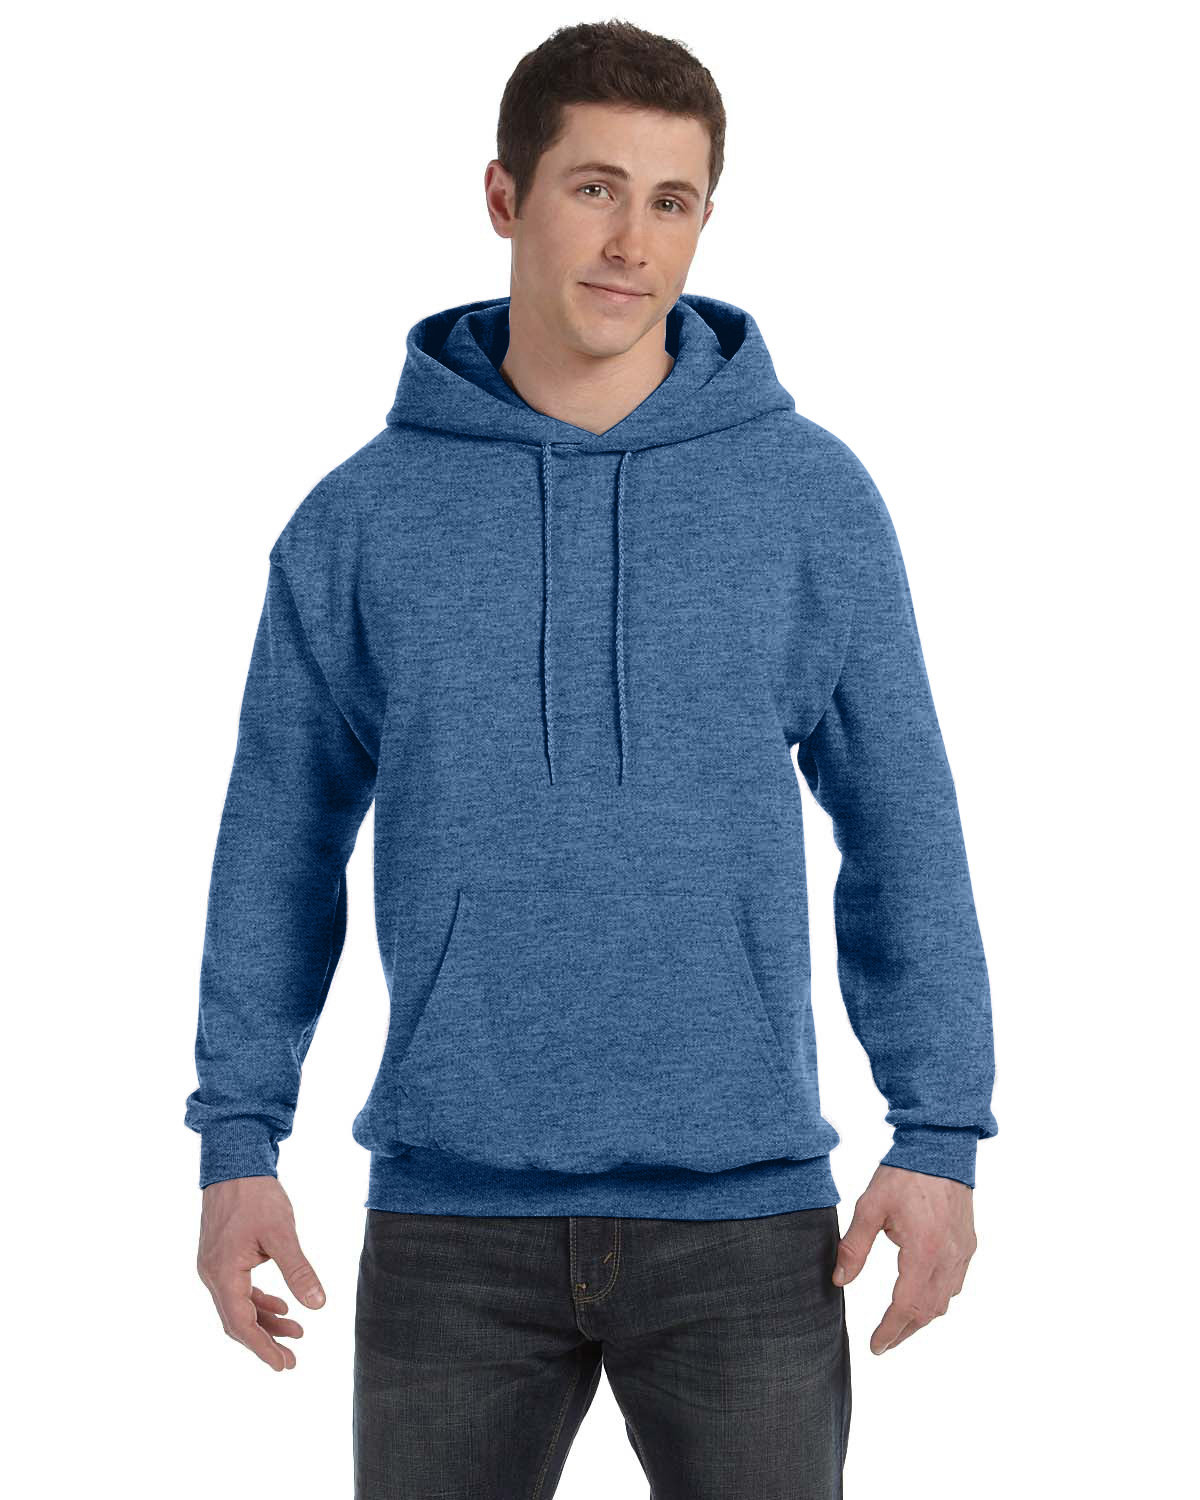 Hanes Unisex Ecosmart® 50/50 Pullover Hooded Sweatshirt HEATHER BLUE